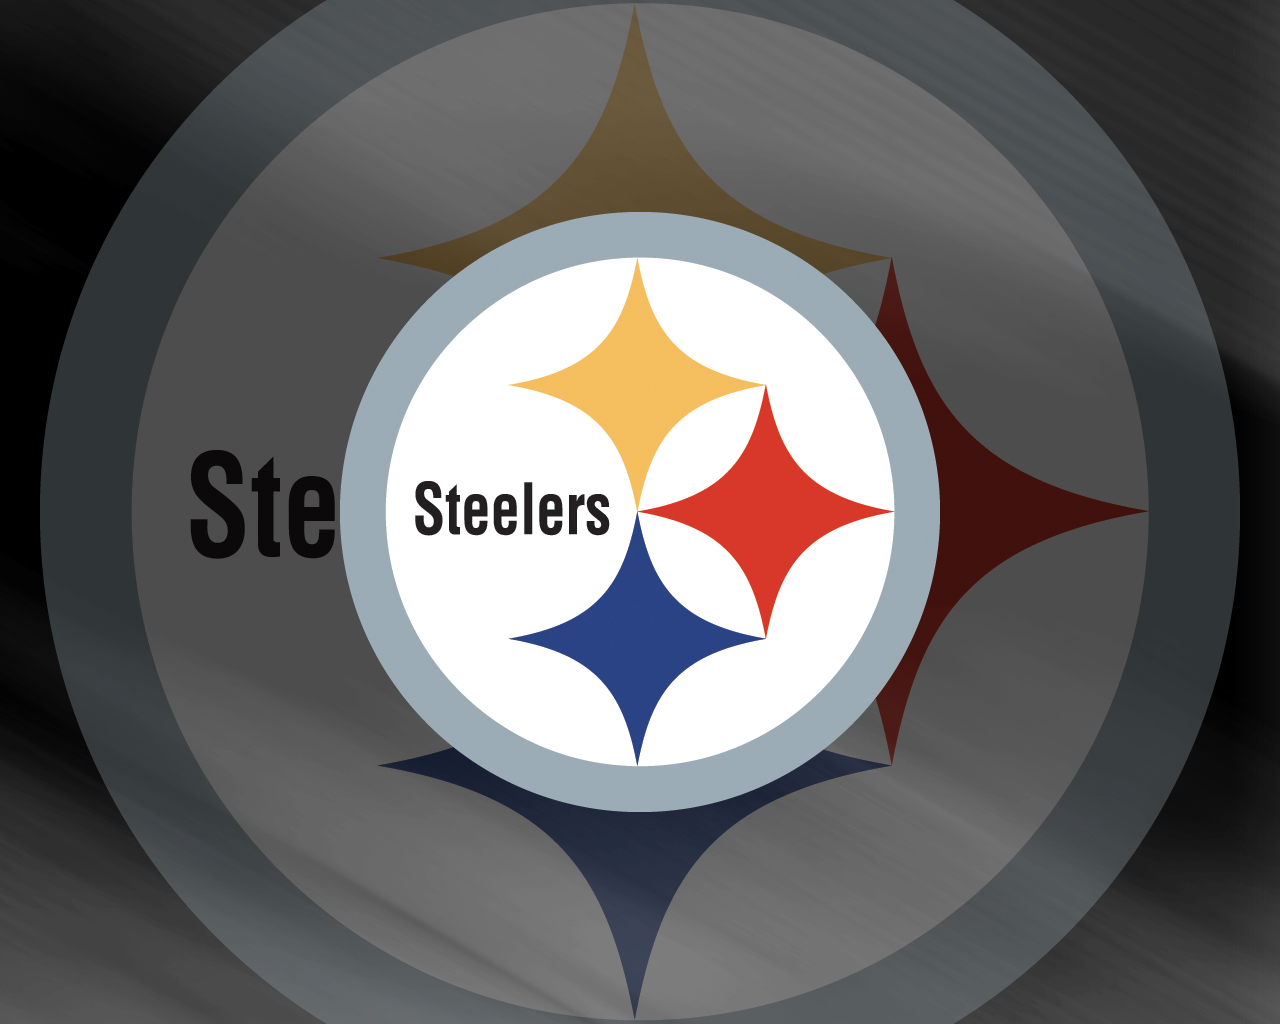 Steelers wallpaper desktop wallpapers Pittsburgh Steelers wallpapers 1280x1024